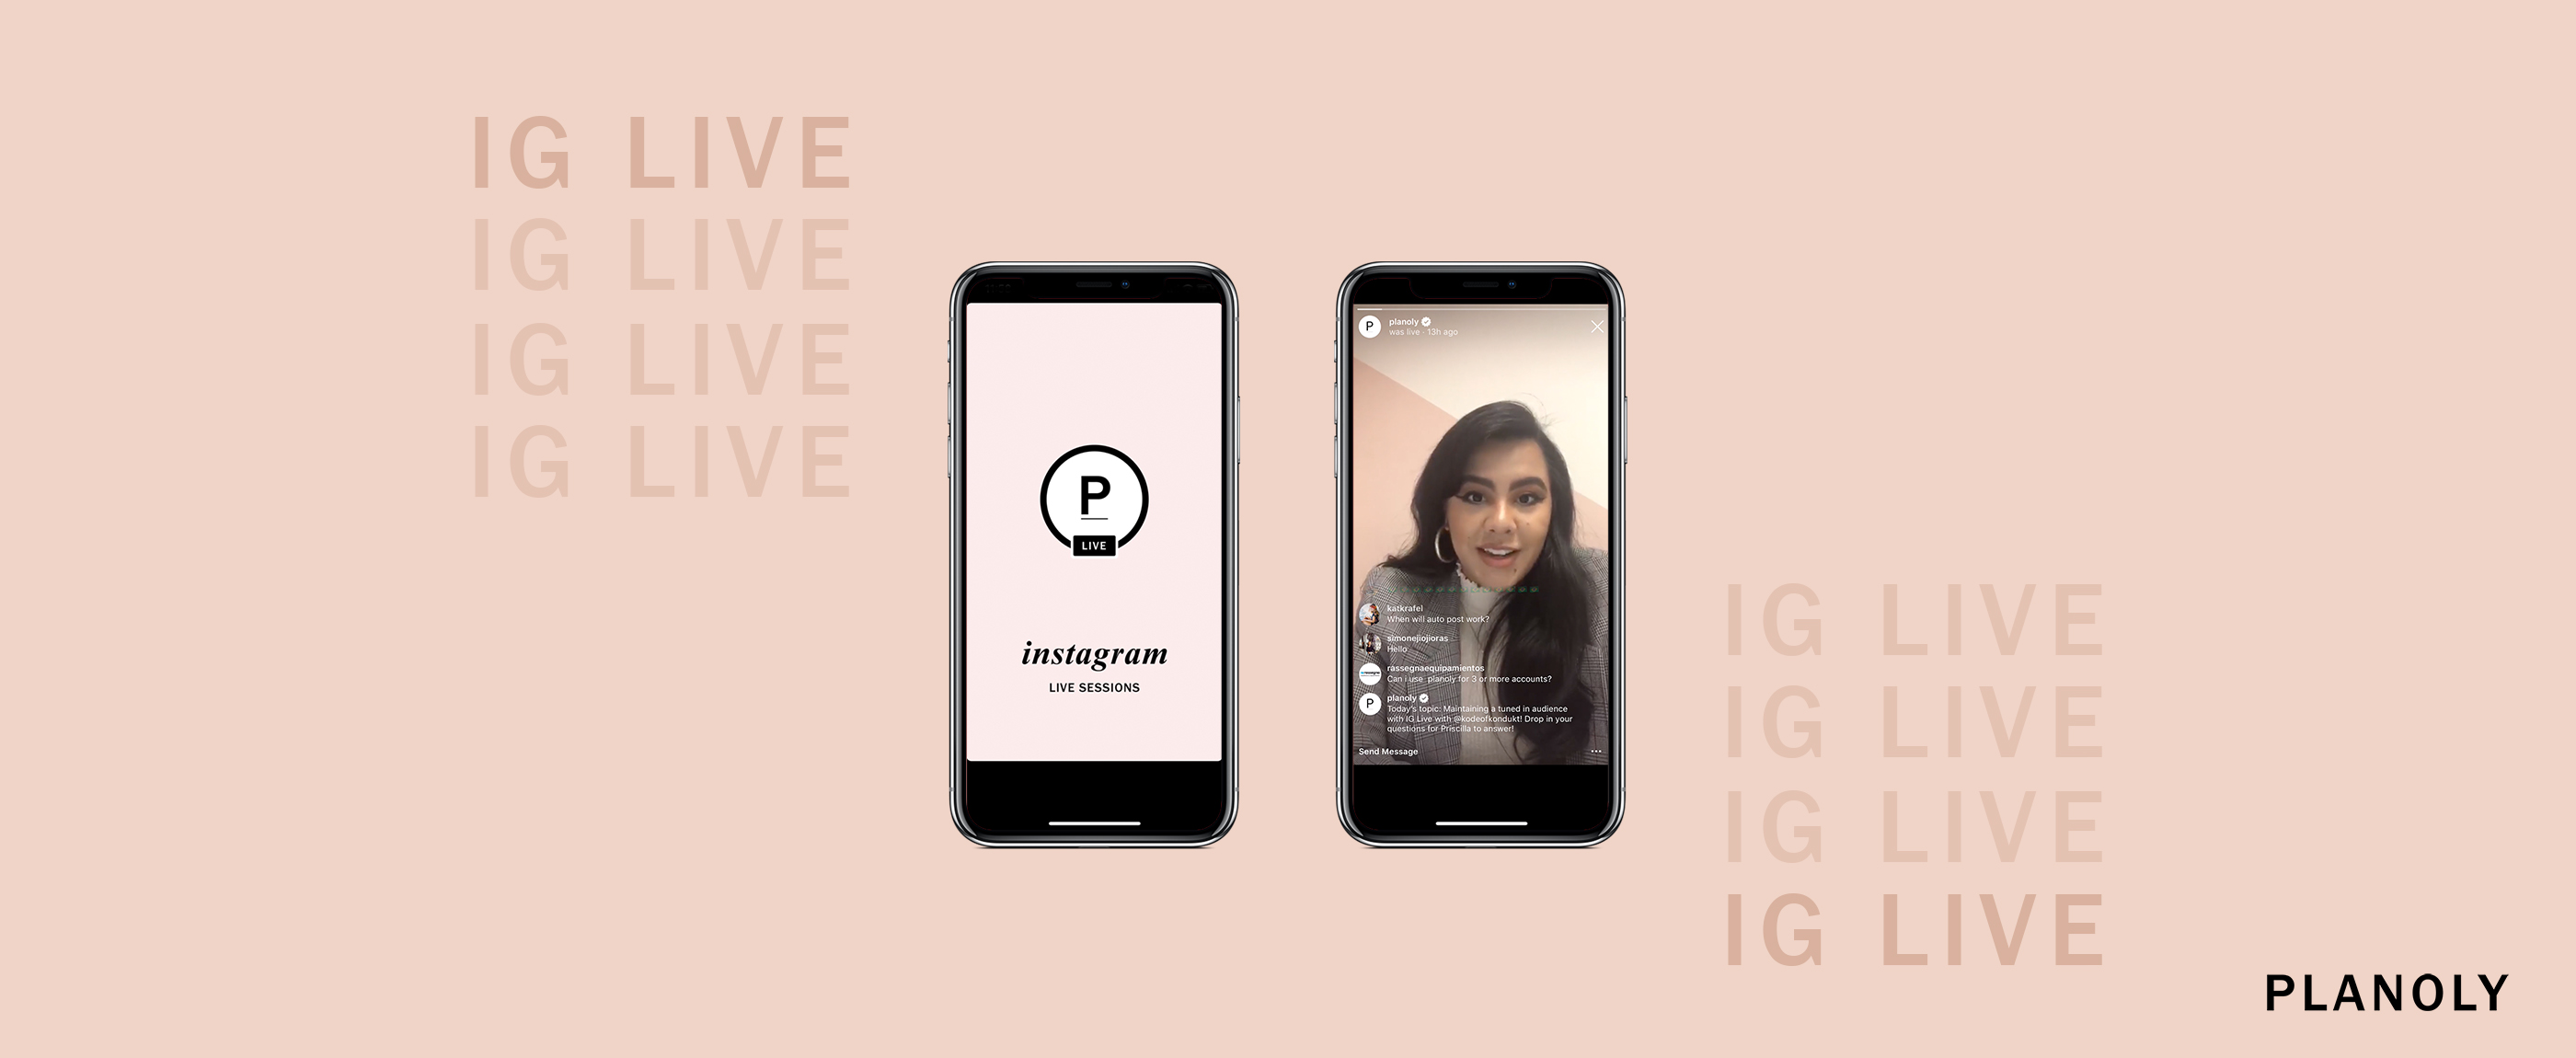 Planoly-Blog-Post-IG-Live-Maintaining-a-Tuned-in-Audience-with-Instagram-Live-Banner-2